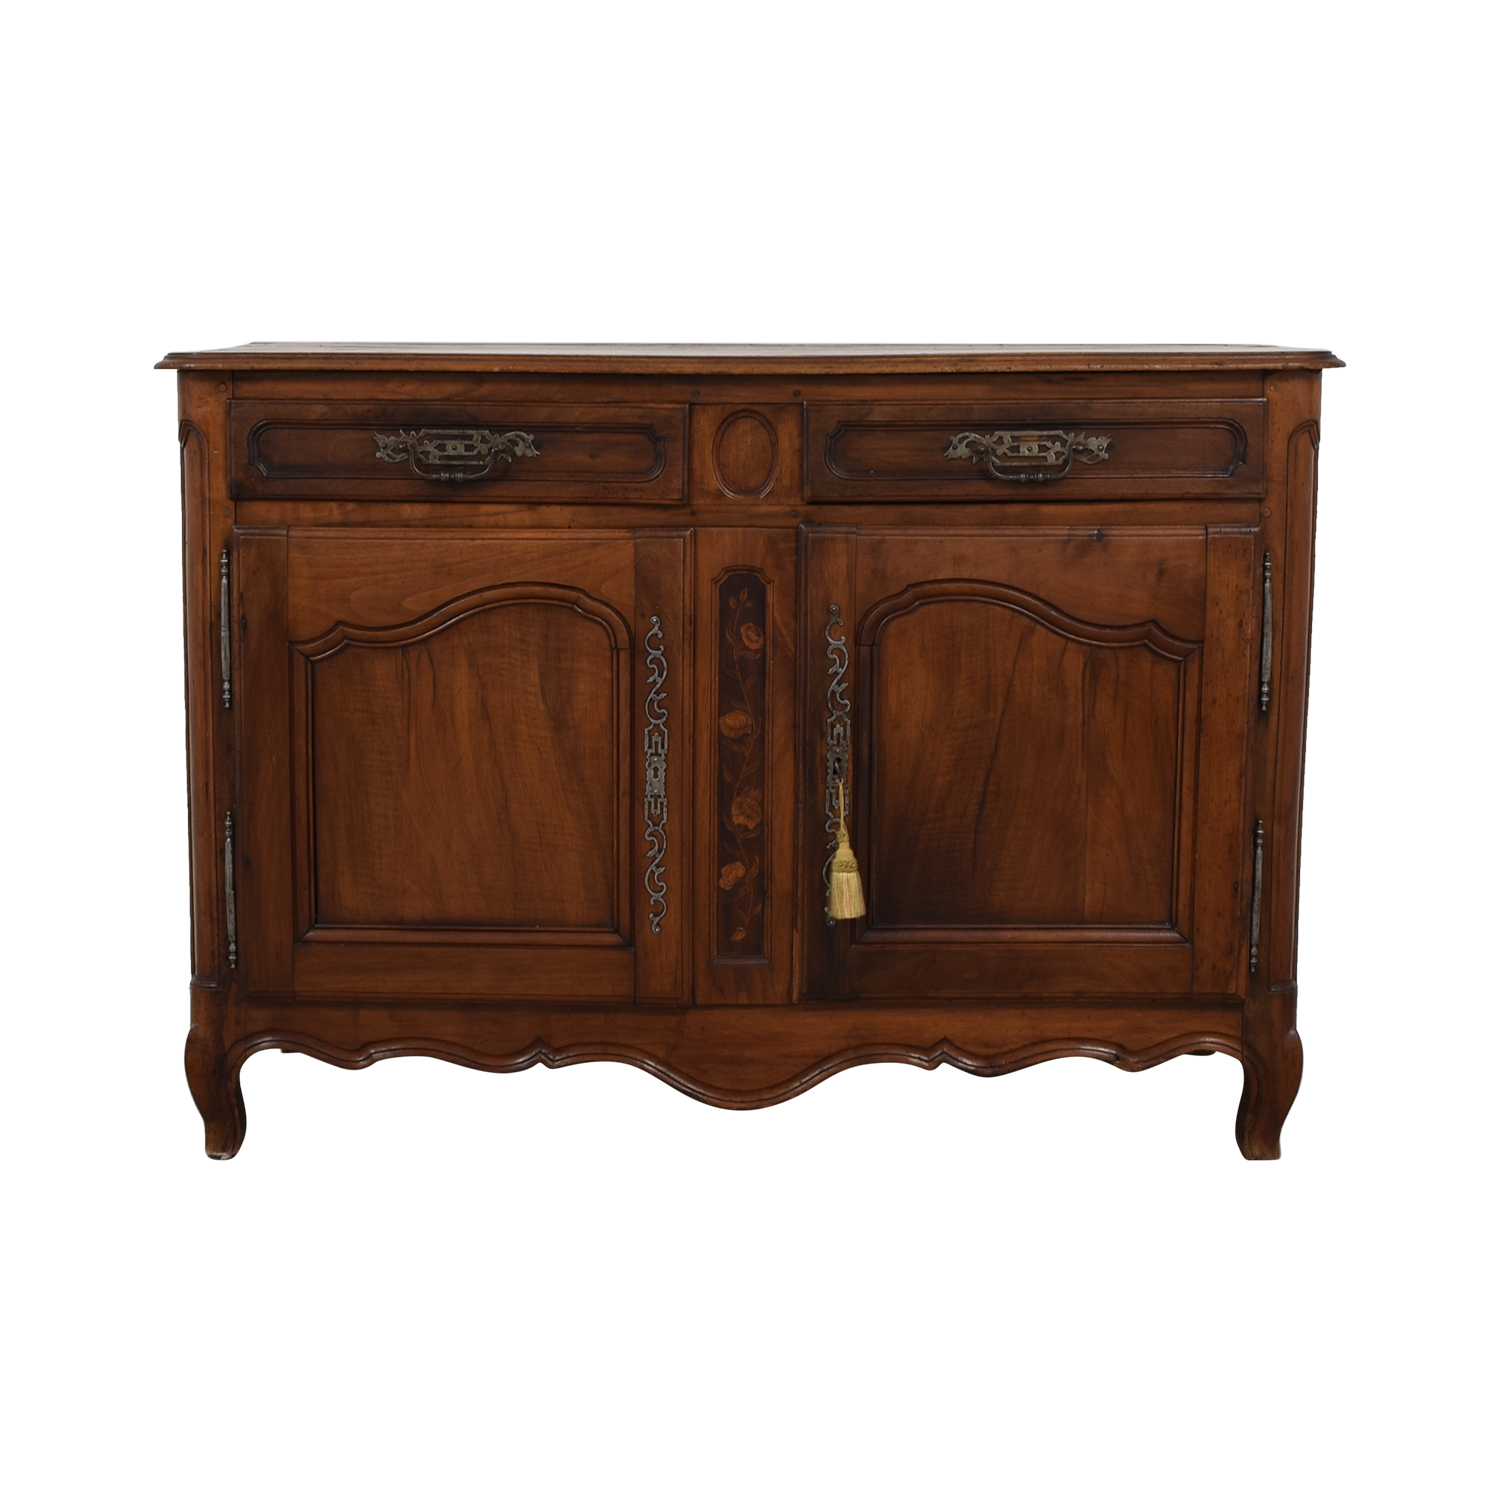 Antique French Country Walnut Dovetailed Buffet